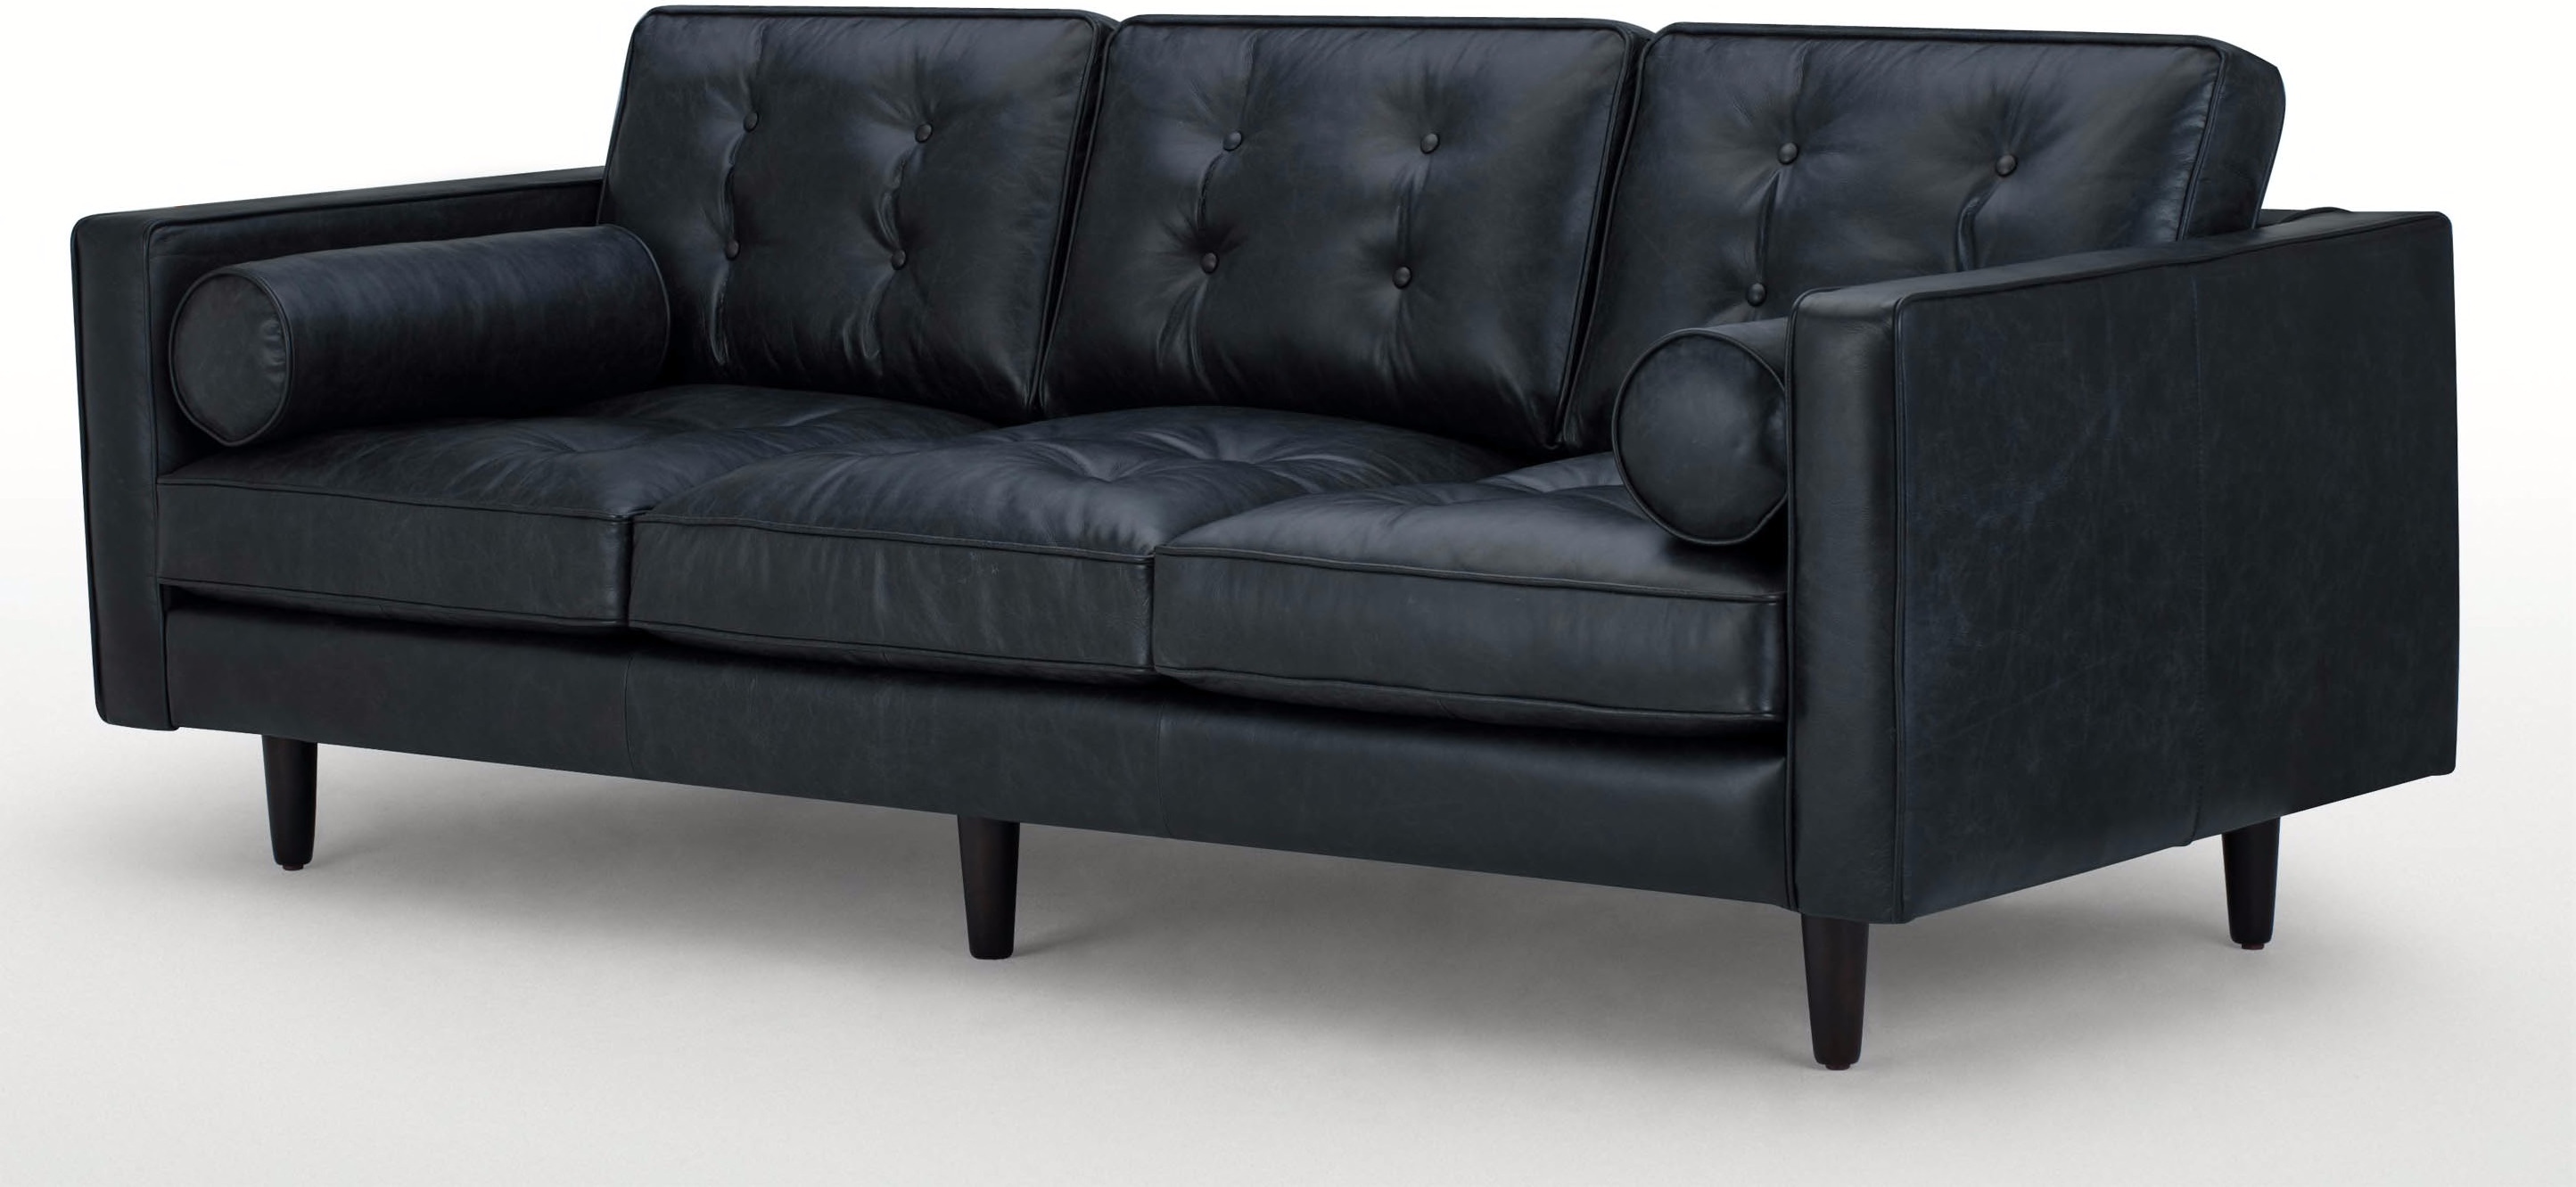 Buy cheap 3 seater black leather sofa compare sofas for Leather sofa 7 seater